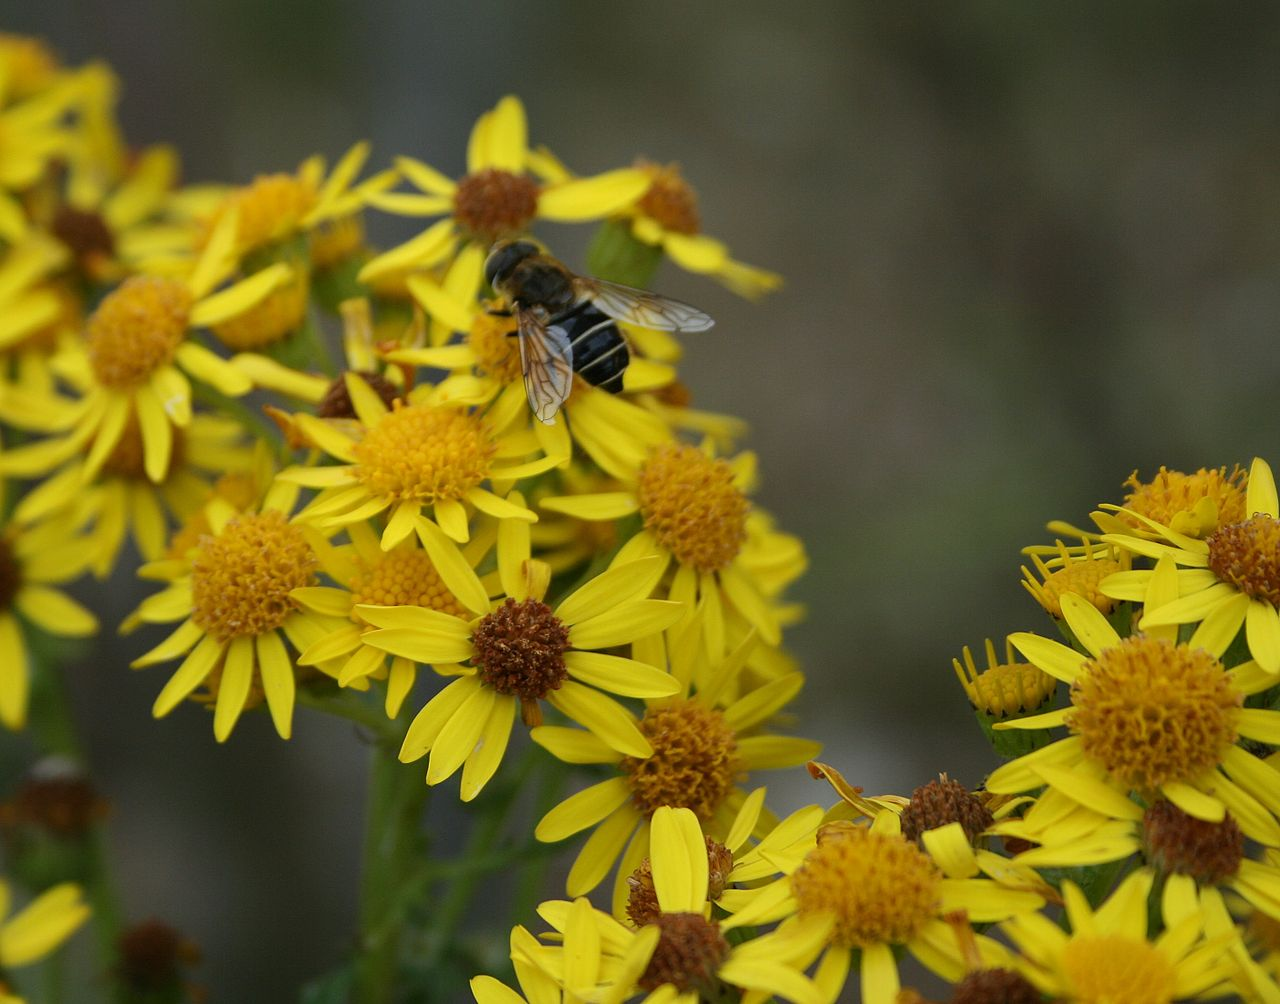 Bee standing on a yellow flower.